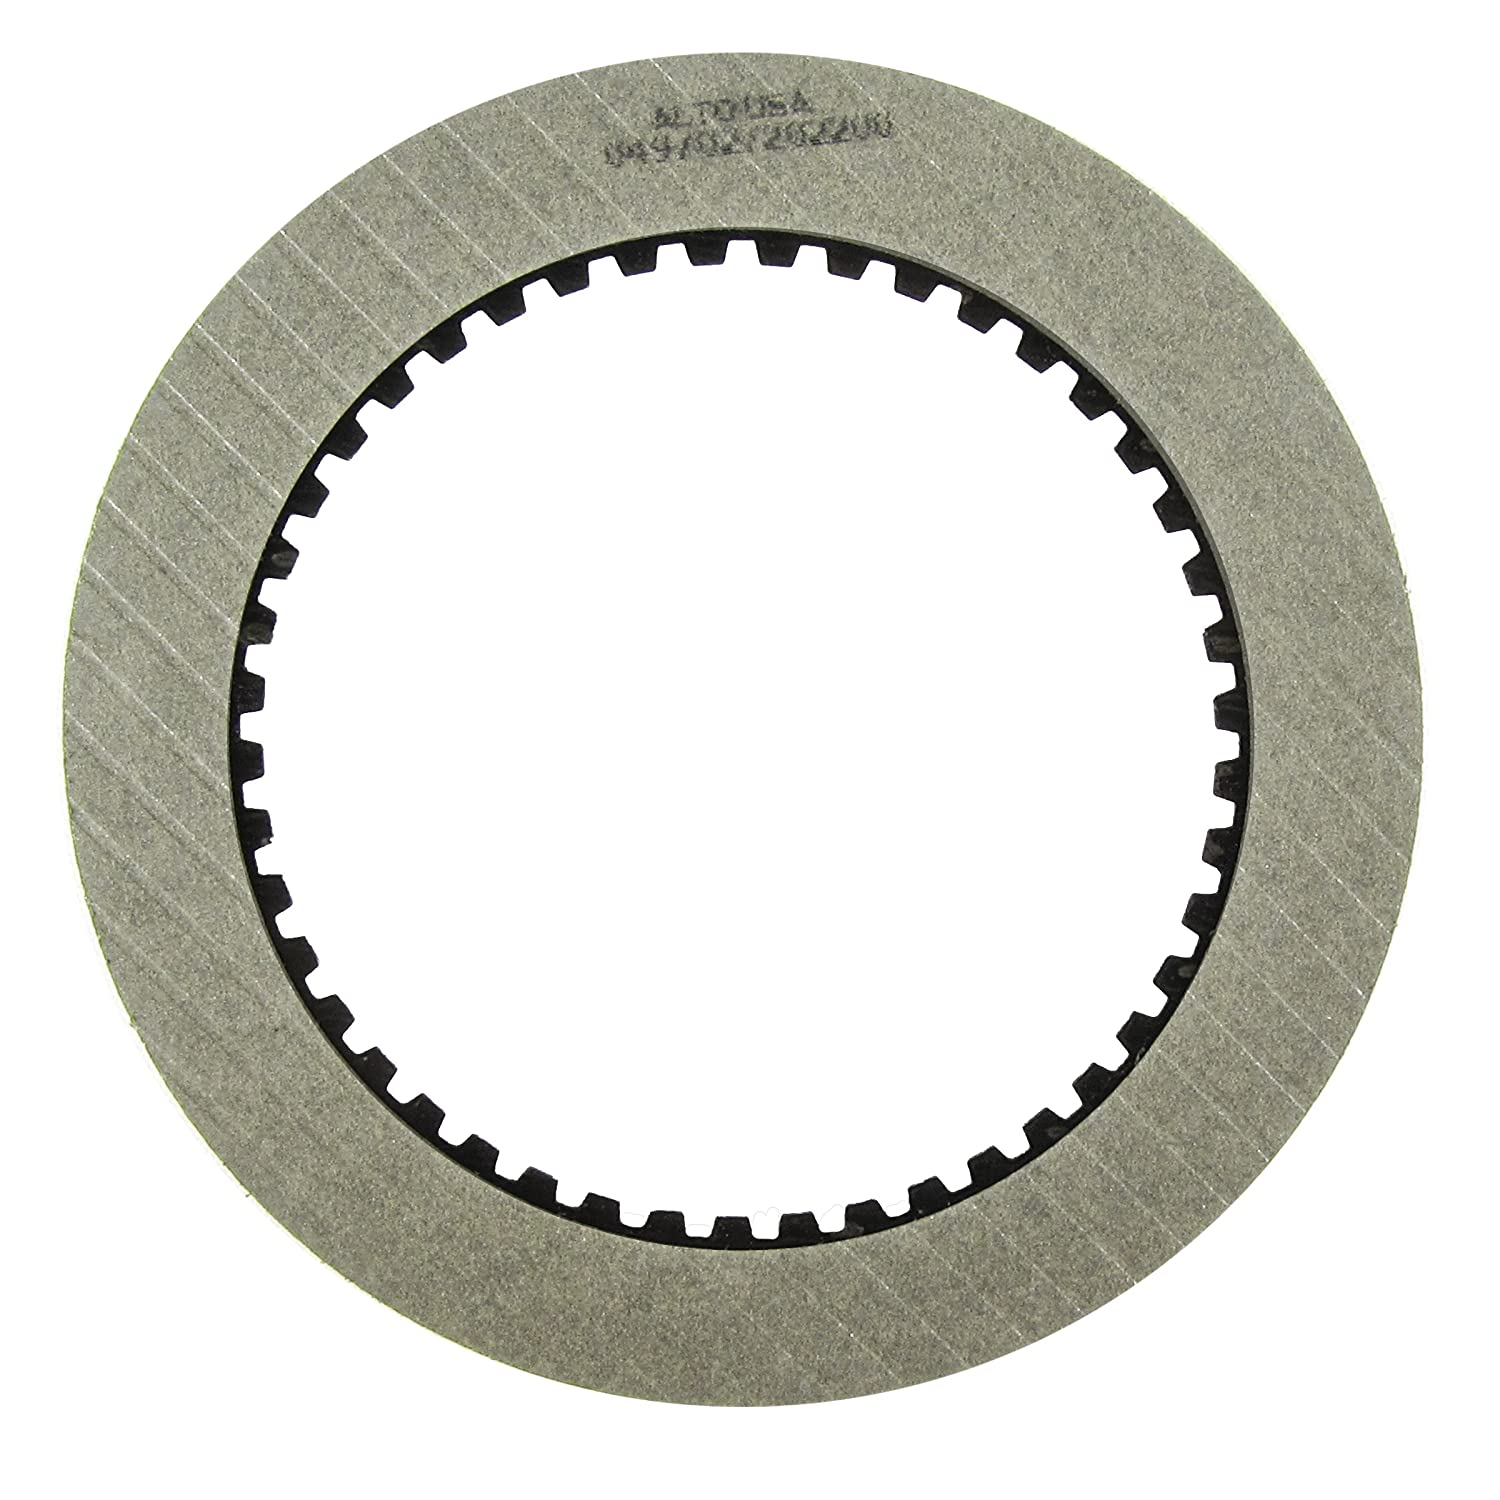 Friction Clutch Caterpillar 9G-8542 Replaced Ranking TOP6 Alto 049702 by Easy-to-use #